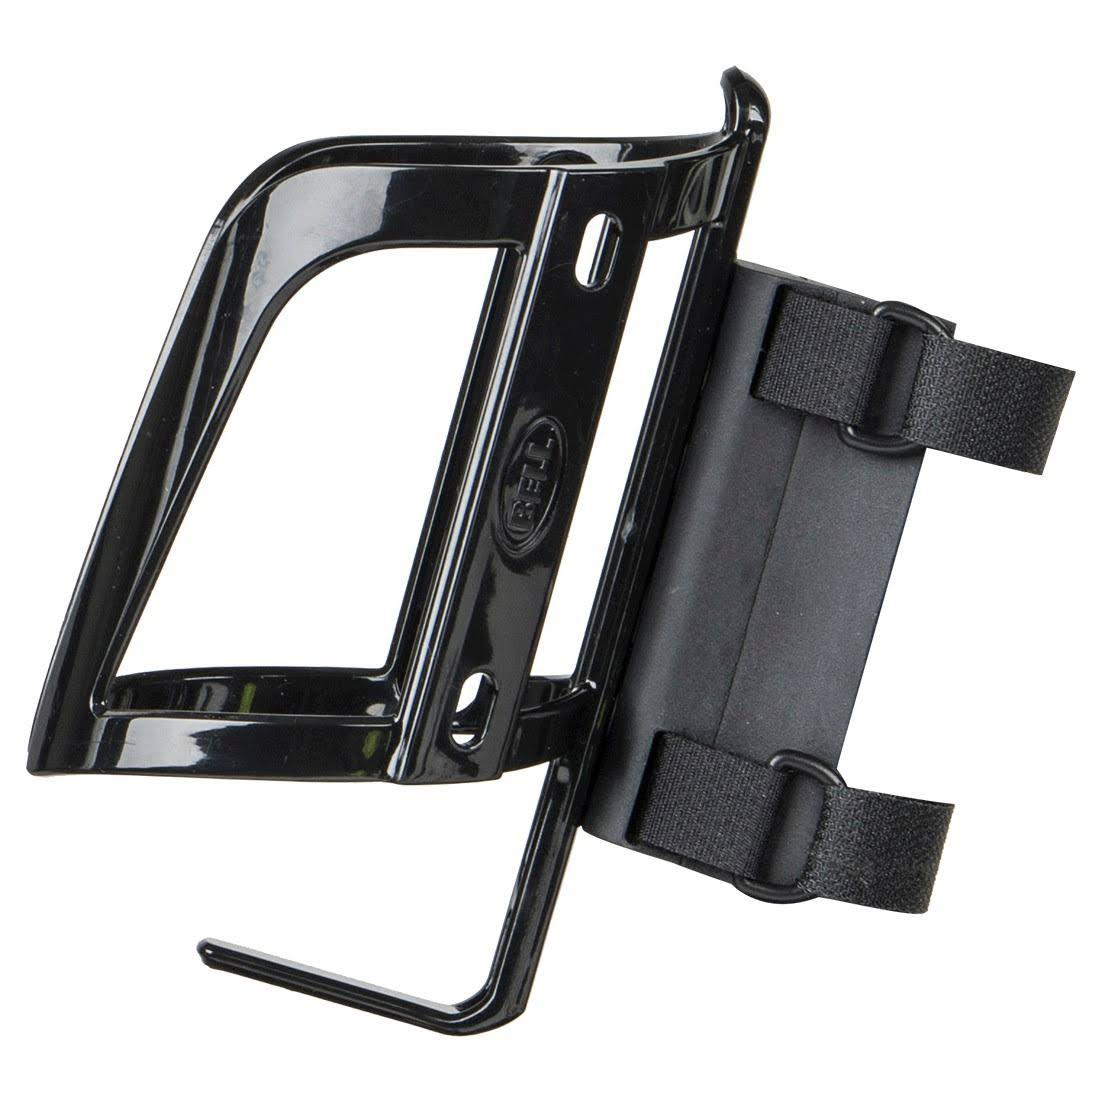 Bell Clinch 600 Universal Bottle Cage - Black